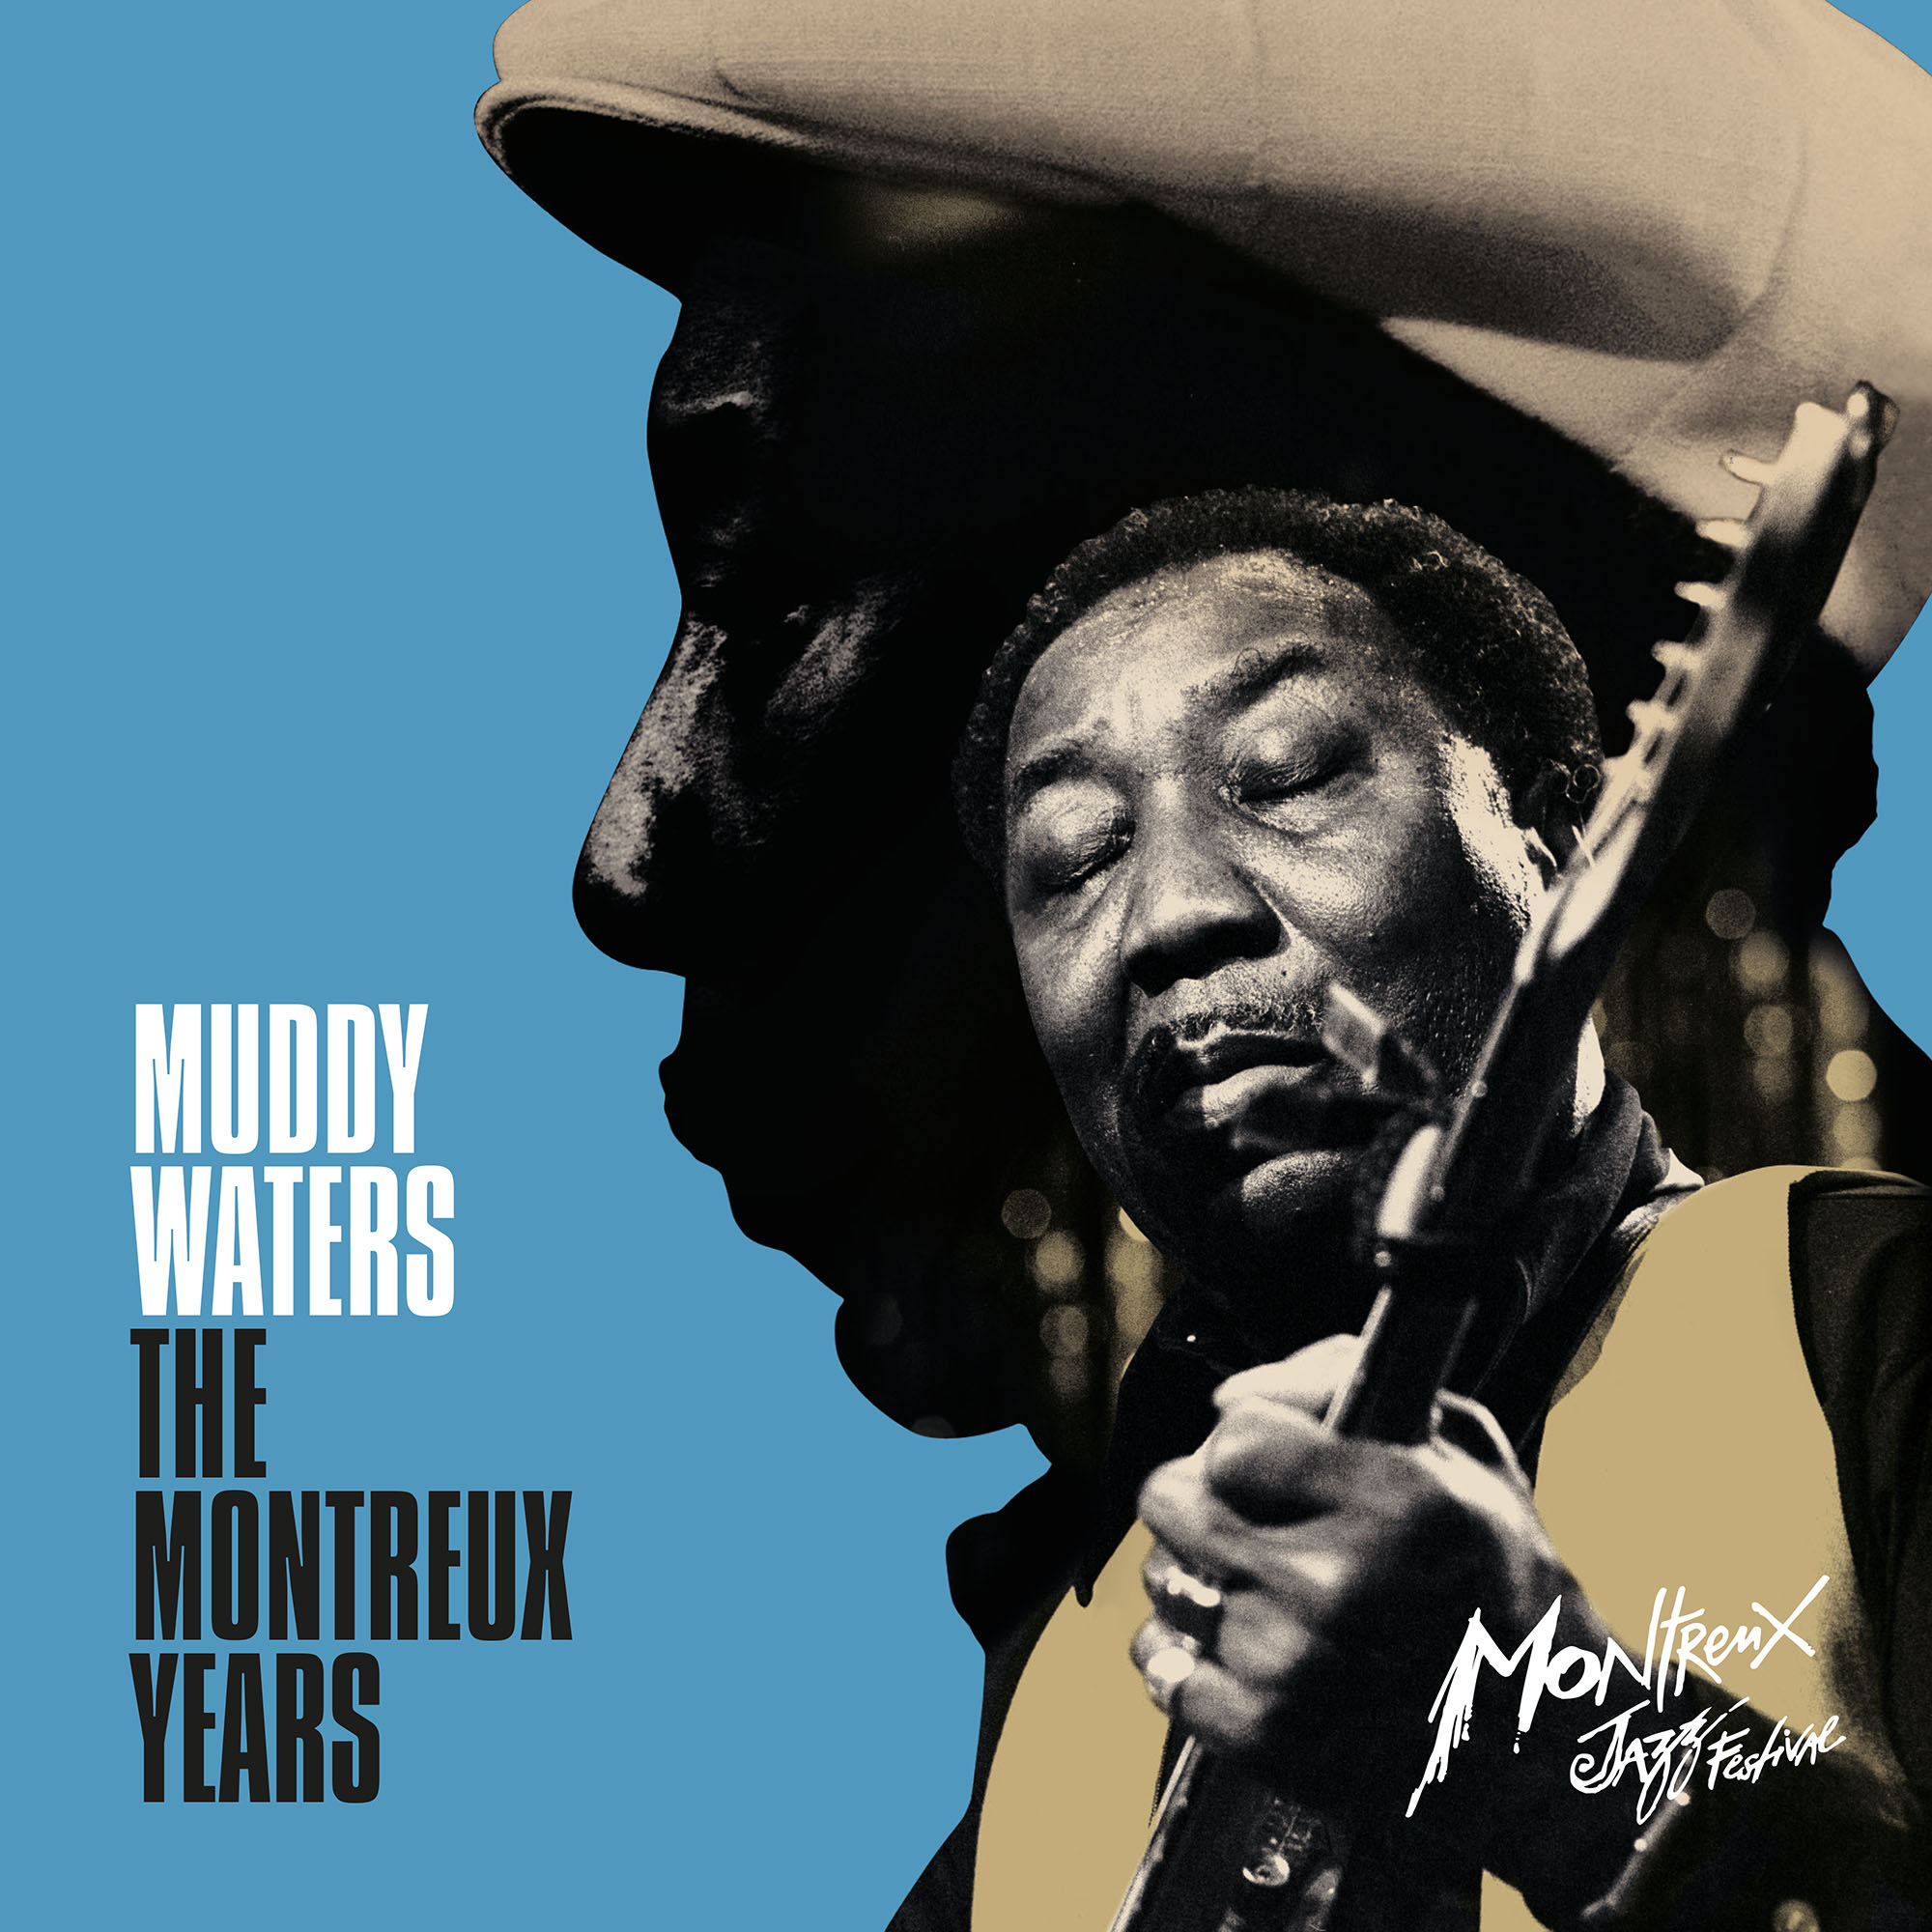 Muddy-Waters-The-Montreux-Years